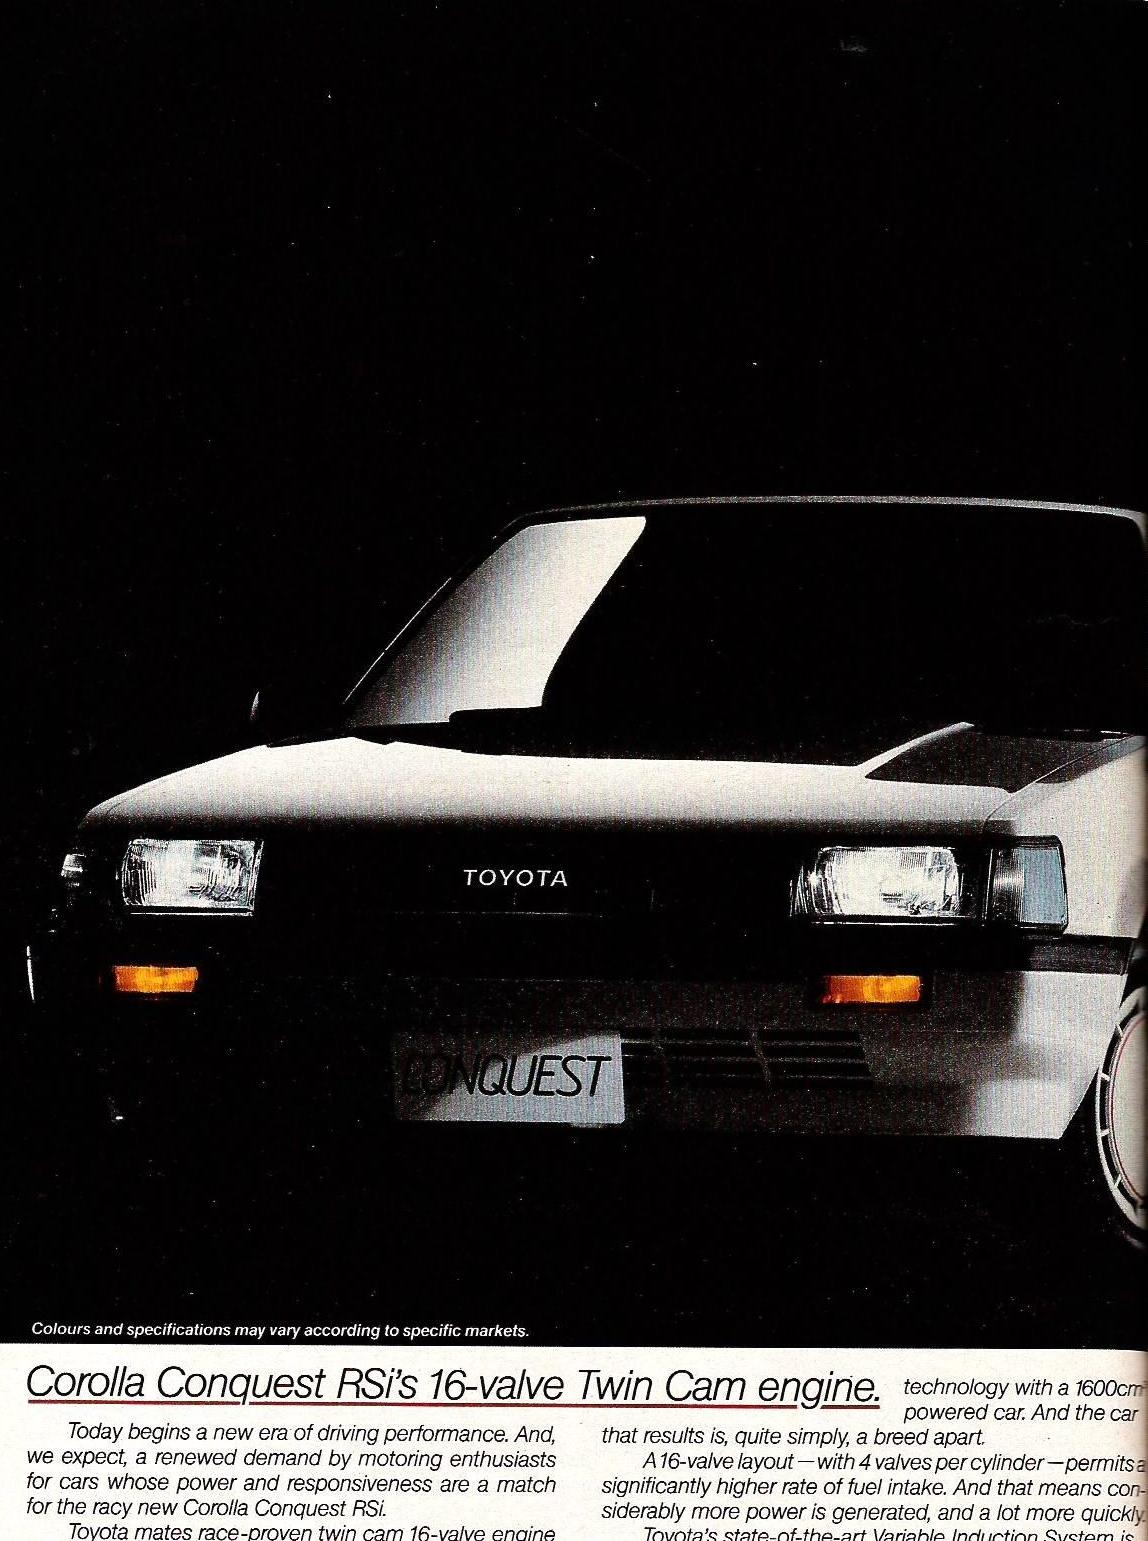 The Rsi Registry 2009 Corolla Rxi 20v Modified Cars Pictures In This Issue Of Wiel Magazine Was Introduced To South Africa Original Name Car Toyota Conquest Twincam 16 A Mouth